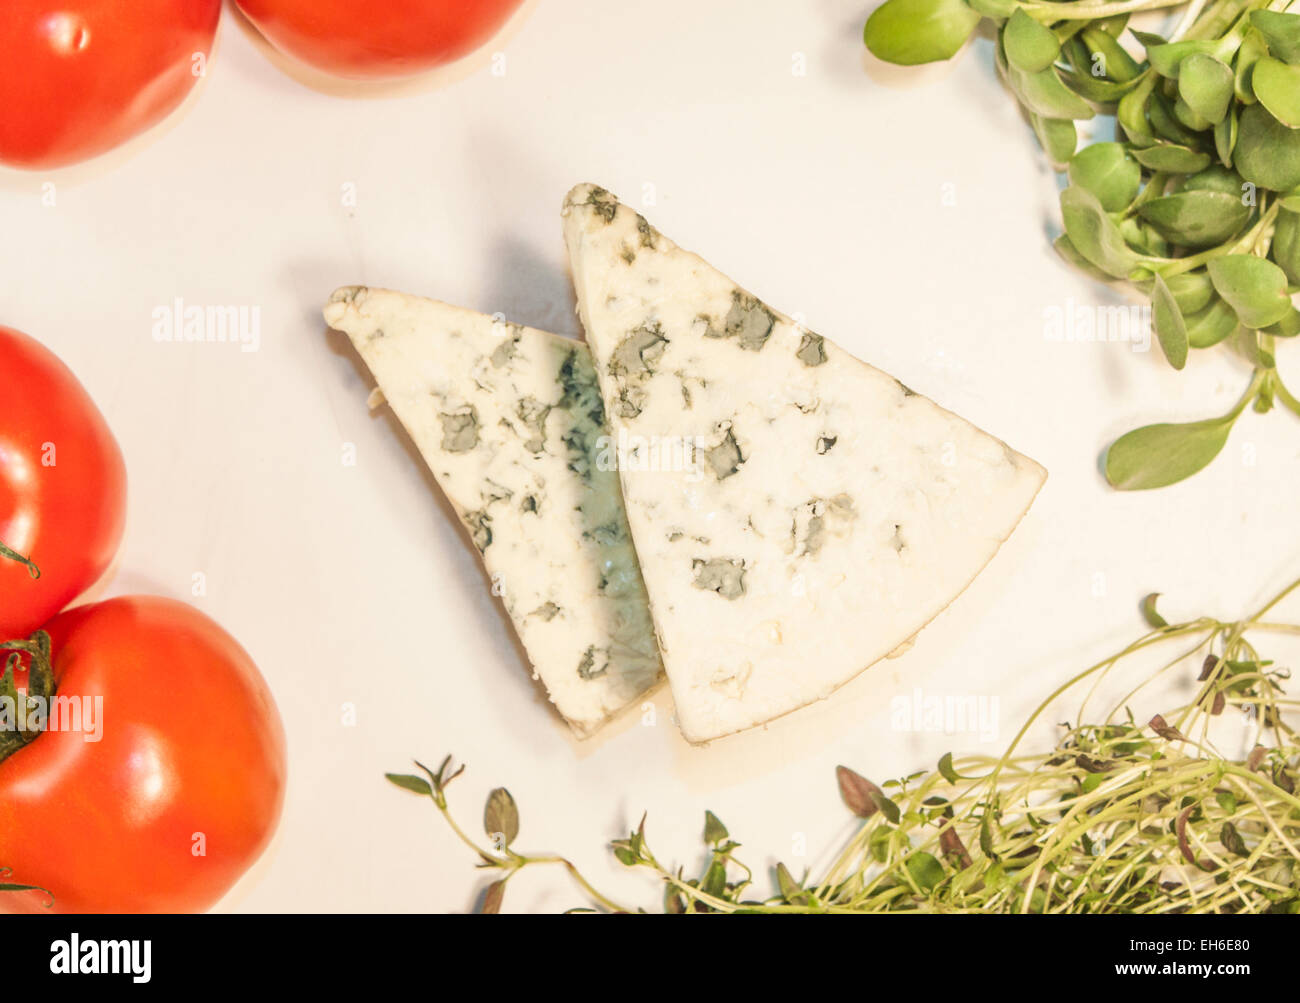 Two triangles of blue cheese, between herbs and tomatoes - Stock Image